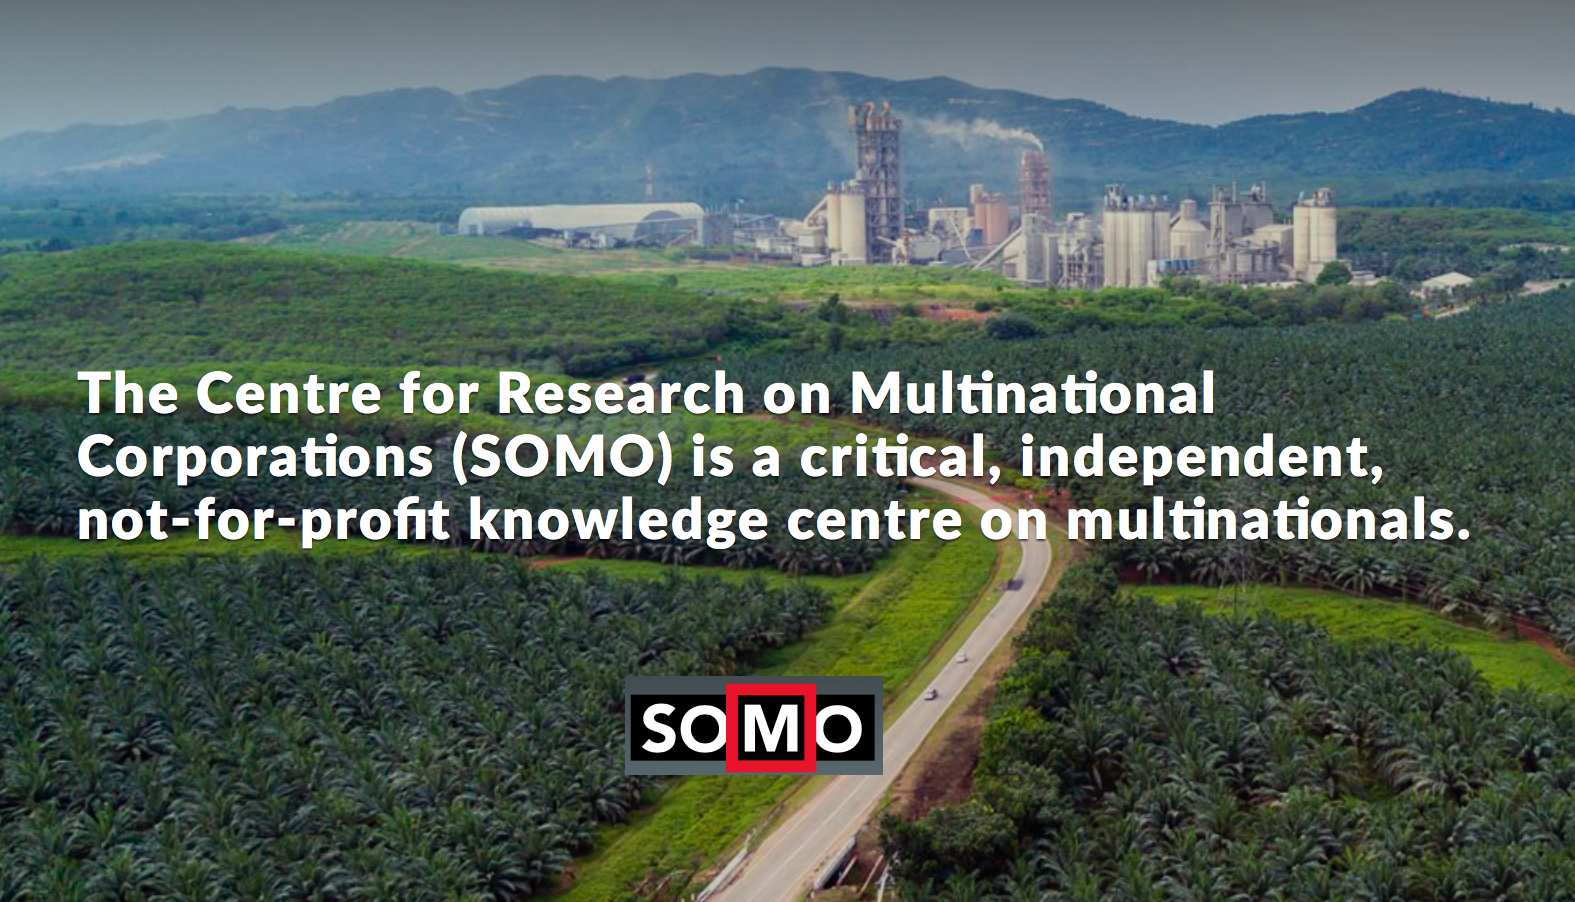 SOMO — The Centre for Research on Multinational Corporations (SOMO) is a critical, independent, not-for-profit knowledge centre on multinationals